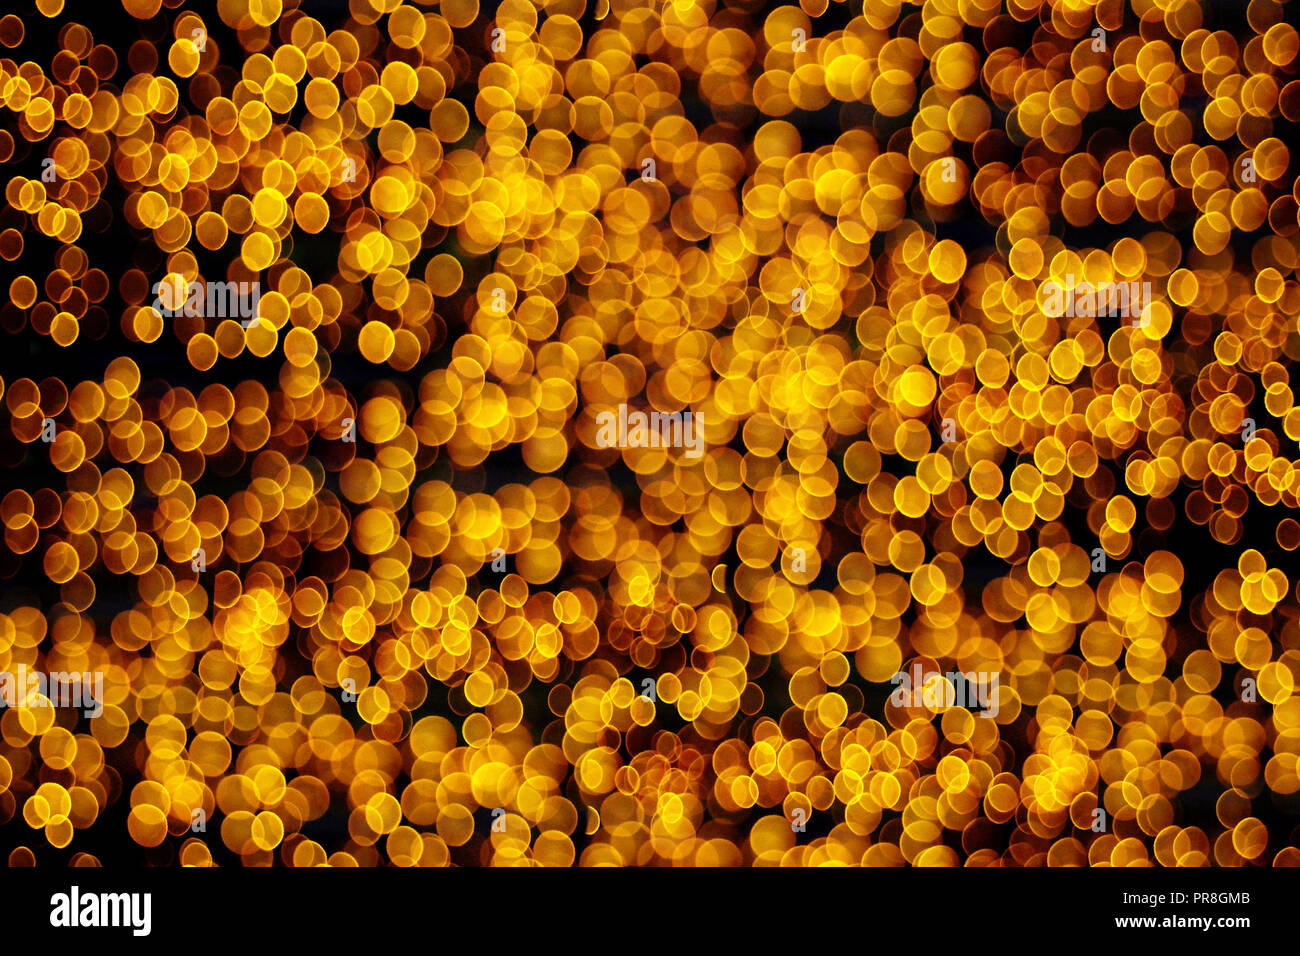 Abstract Christmas lights background, golden glitter defocused texture - Stock Image